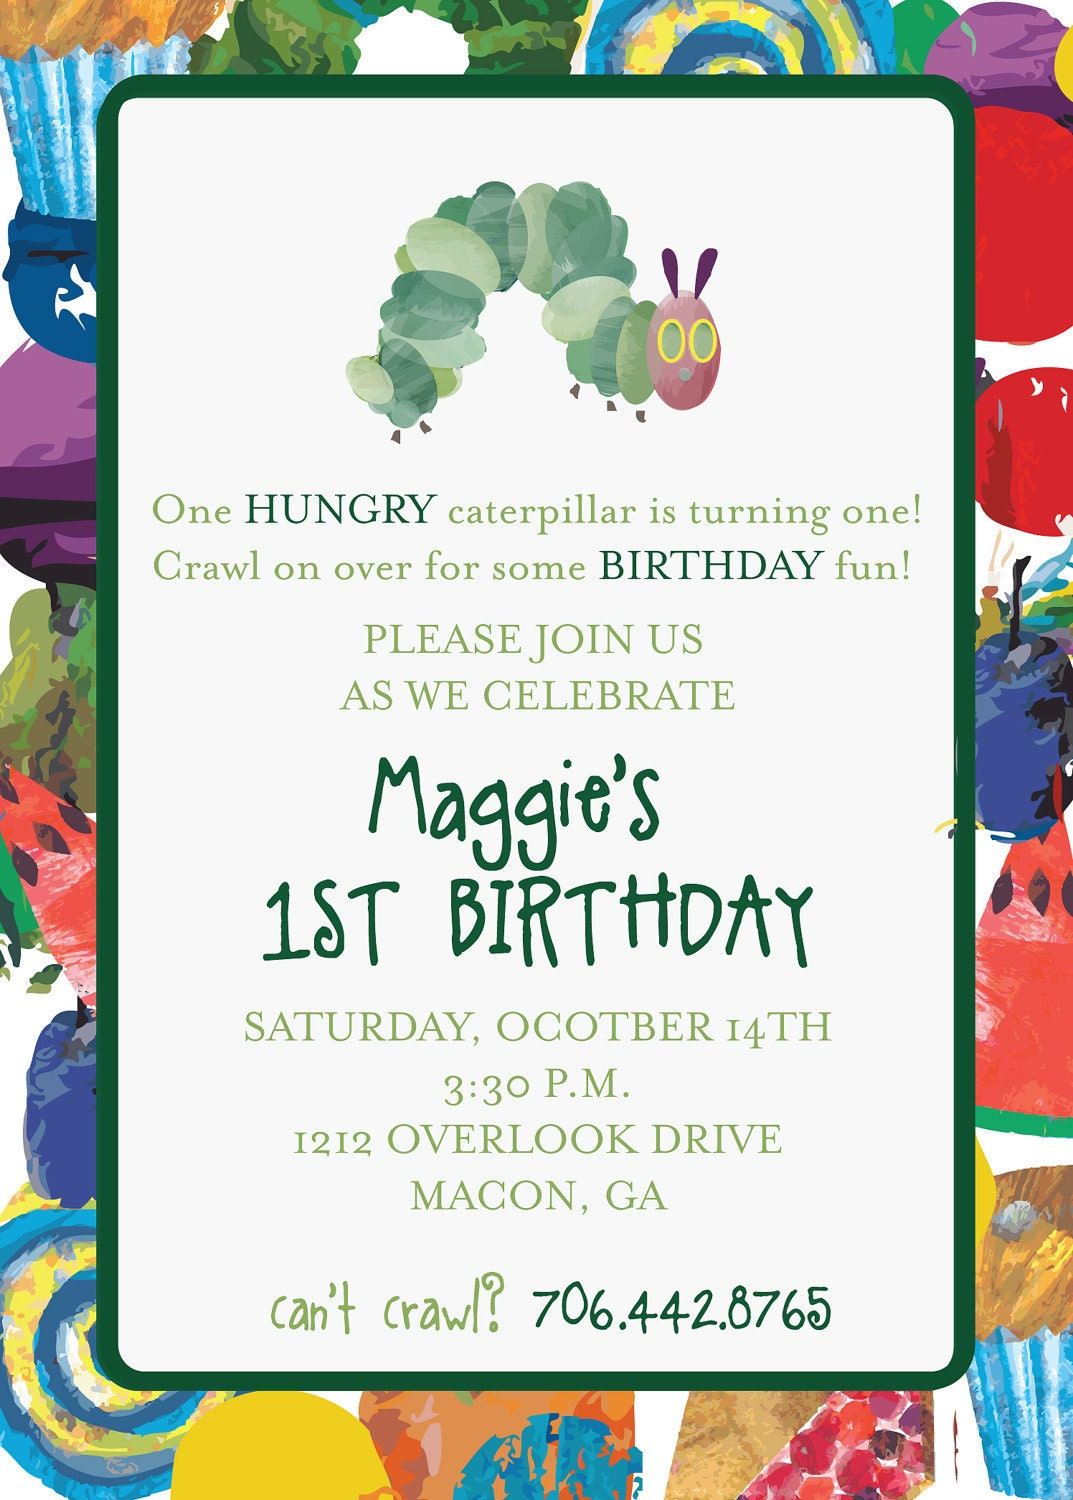 Hungry Caterpillar Invite was great invitation layout